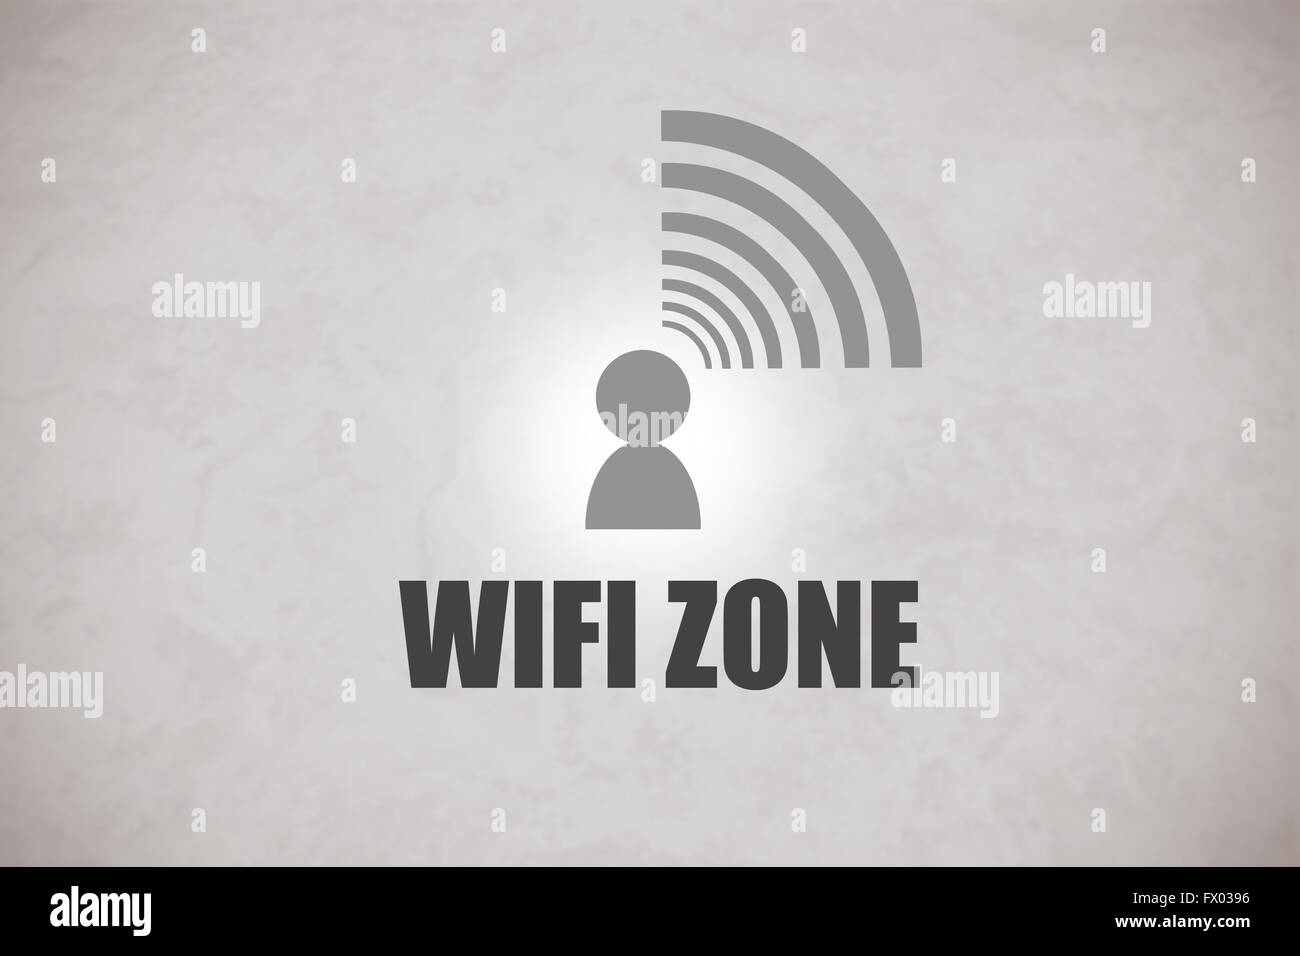 Zone WIFI logo dans un fond gris Photo Stock